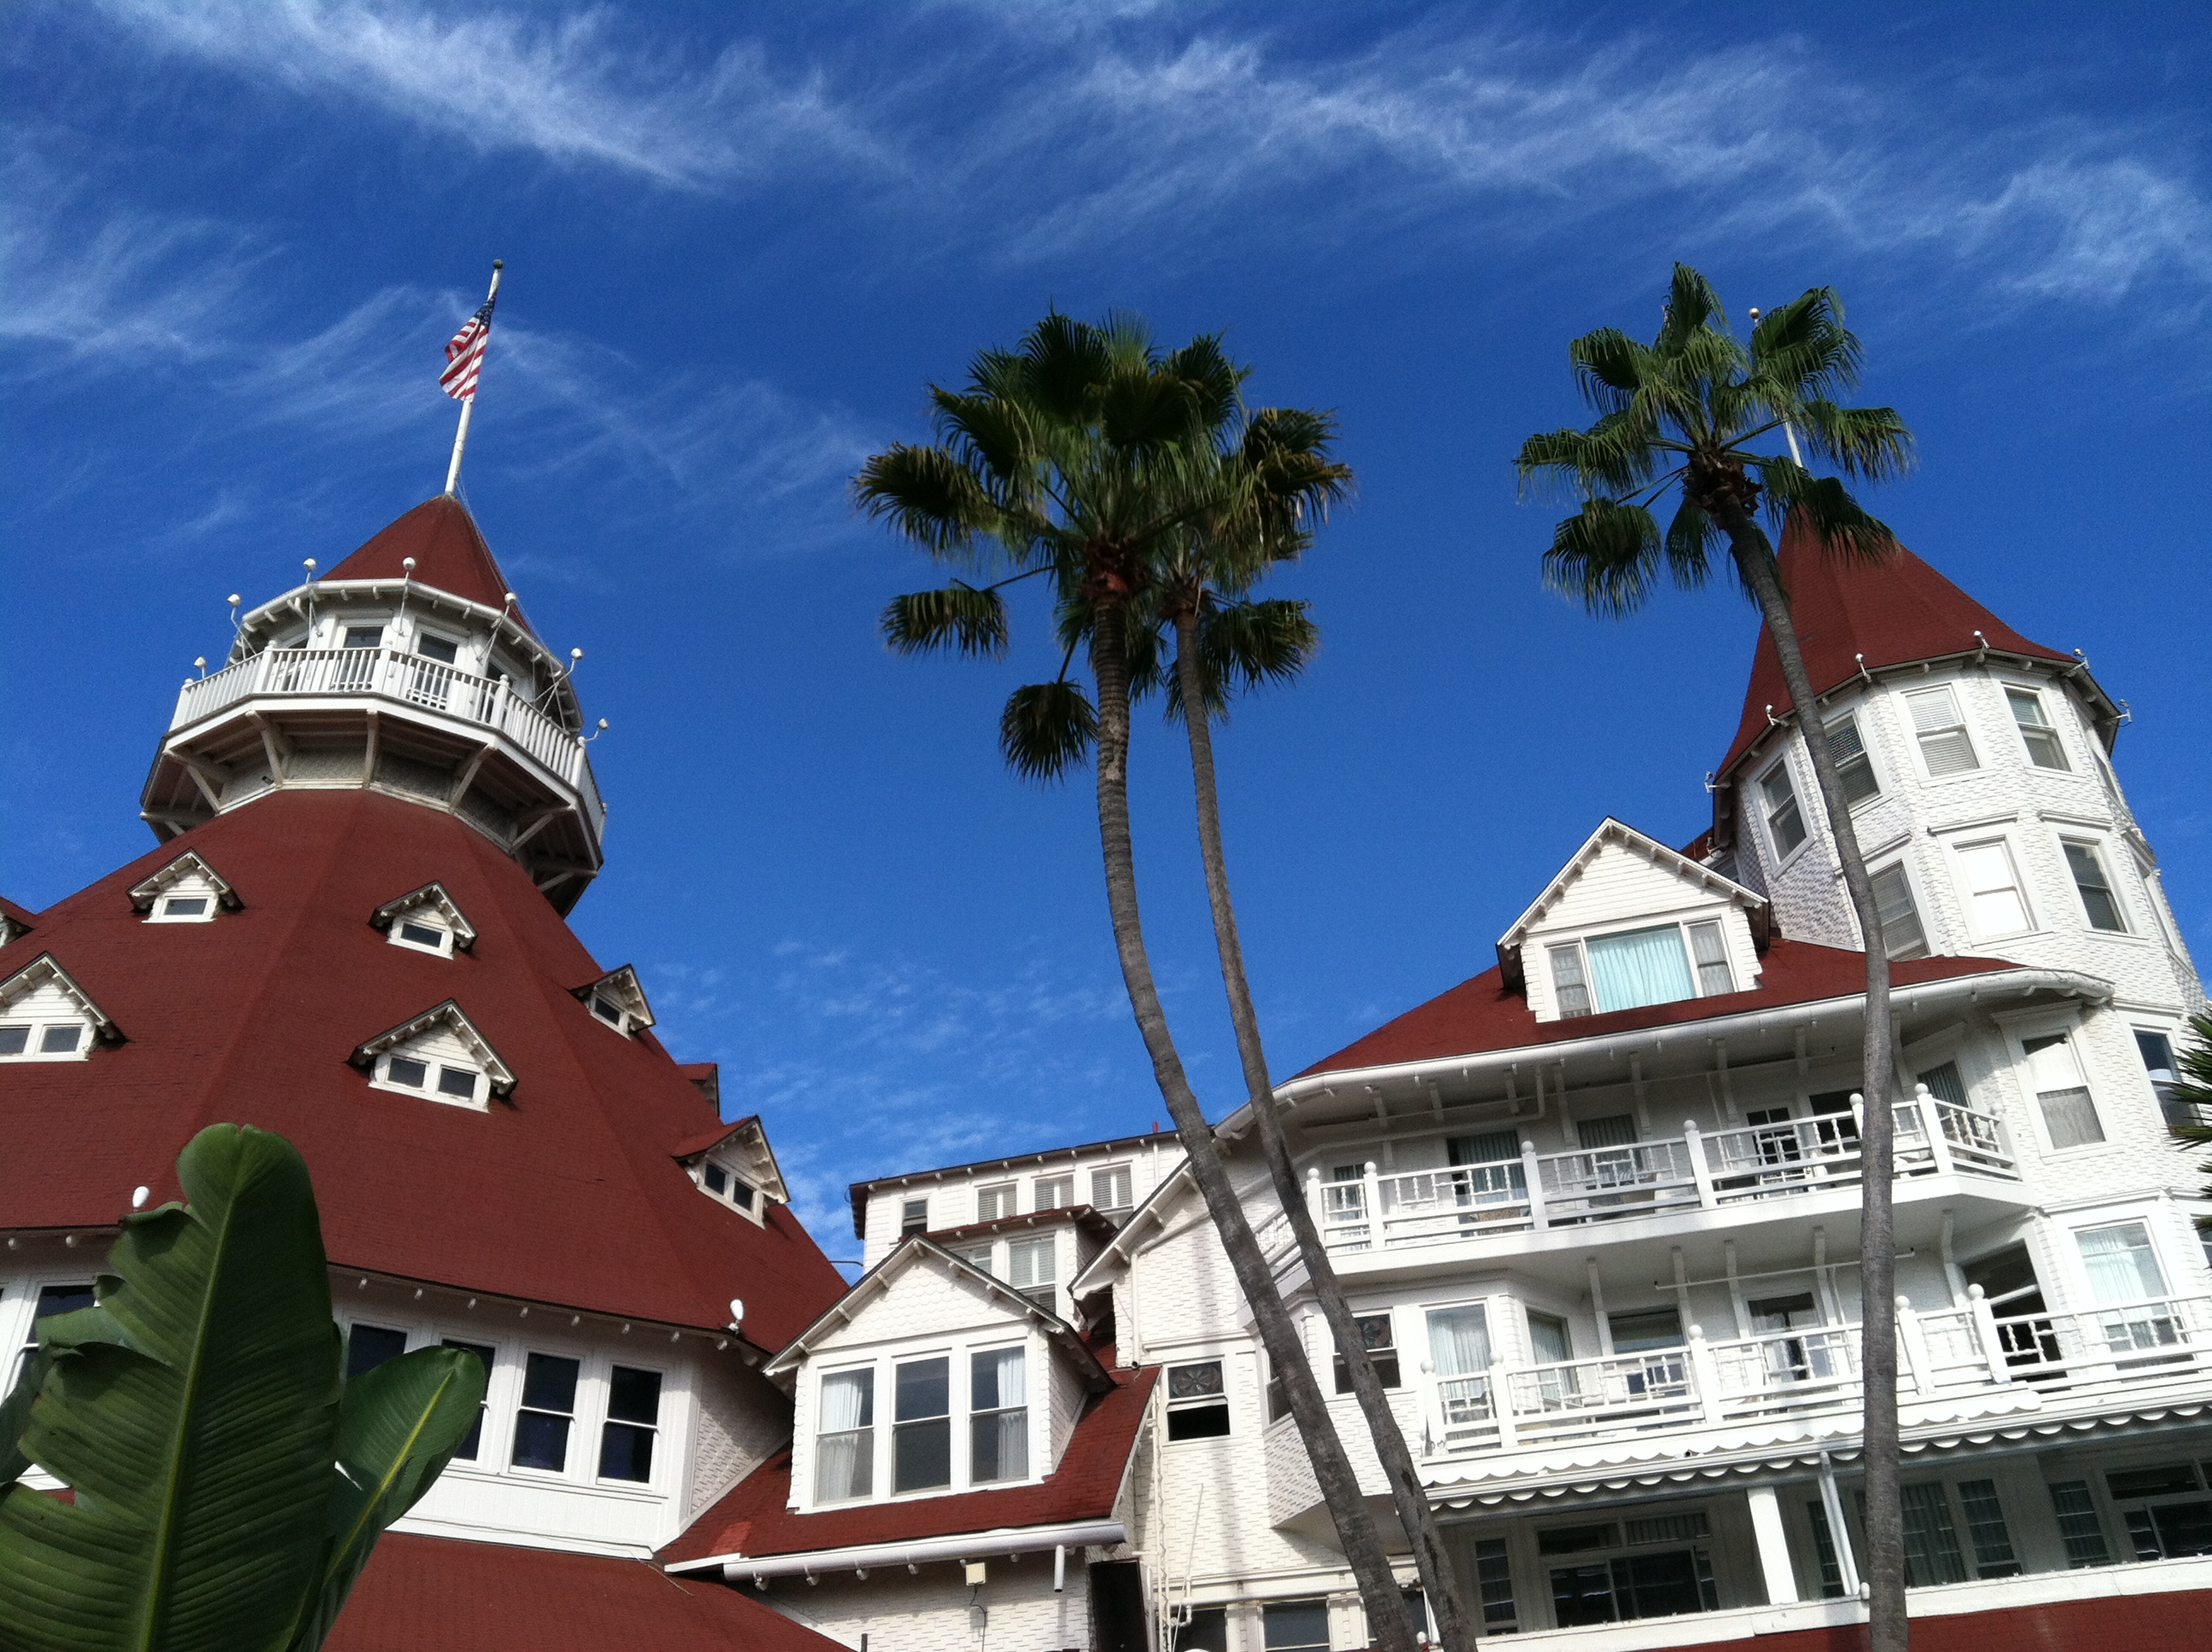 Hotel del Coronado, inspiration for the Emerald City!